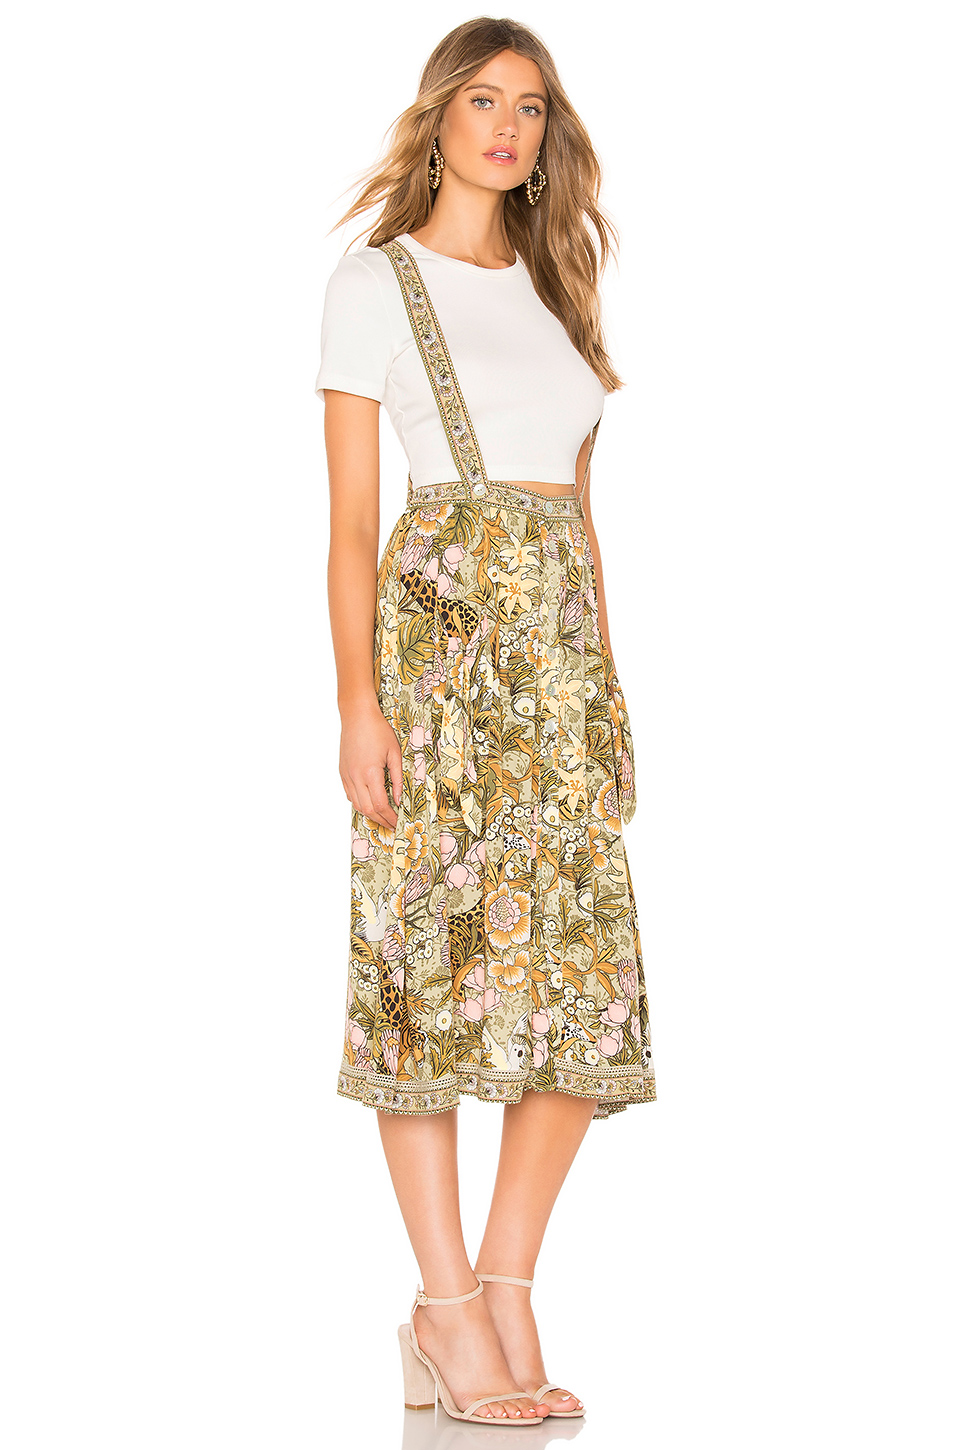 65f4c803880 Buy Original Spell   The Gypsy Collective Jungle Midi Skirt at ...